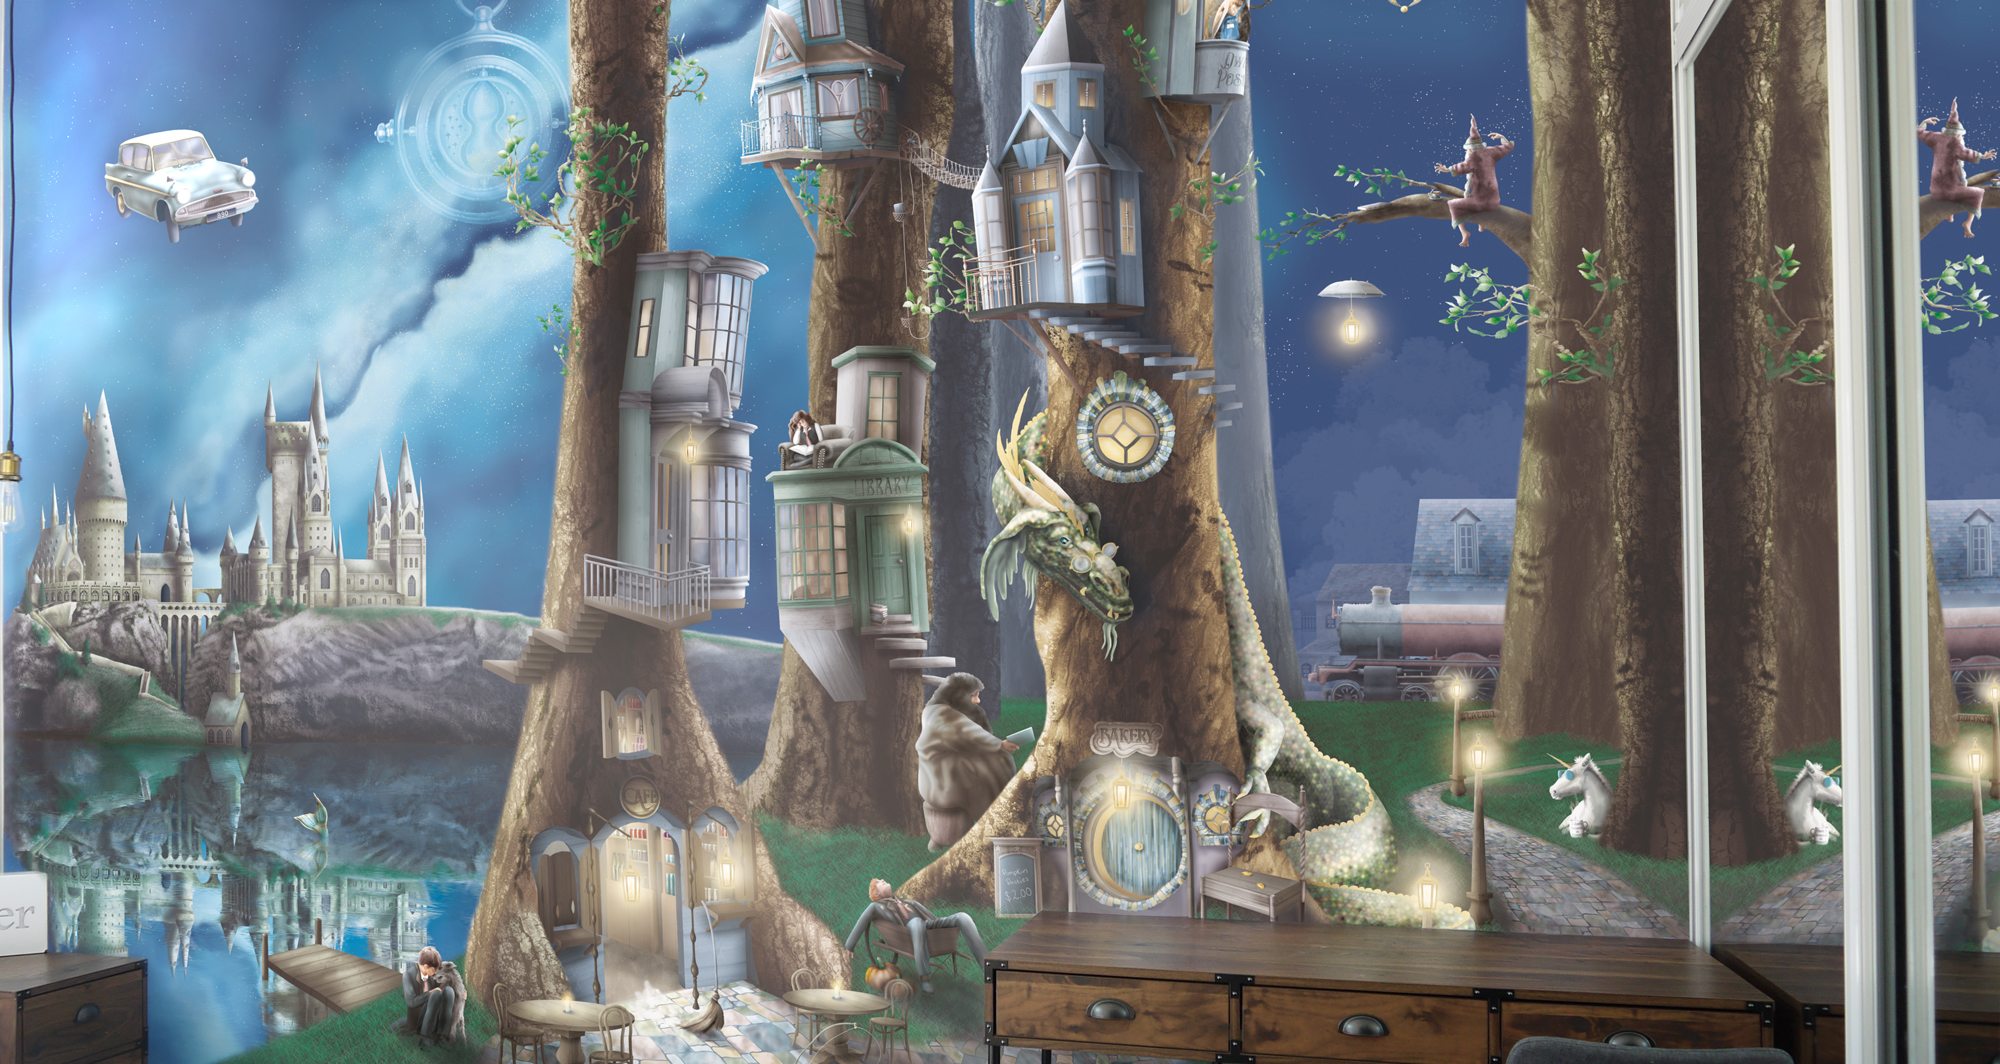 Harry Potter Inspired Wallpaper Wall Mural of the enchanted forbidden forest, with magic, witches, wizards, dragons and more. Also featuring Fairy tale tree houses, hogwarts castle, lake and flying car from chambre of secrets.